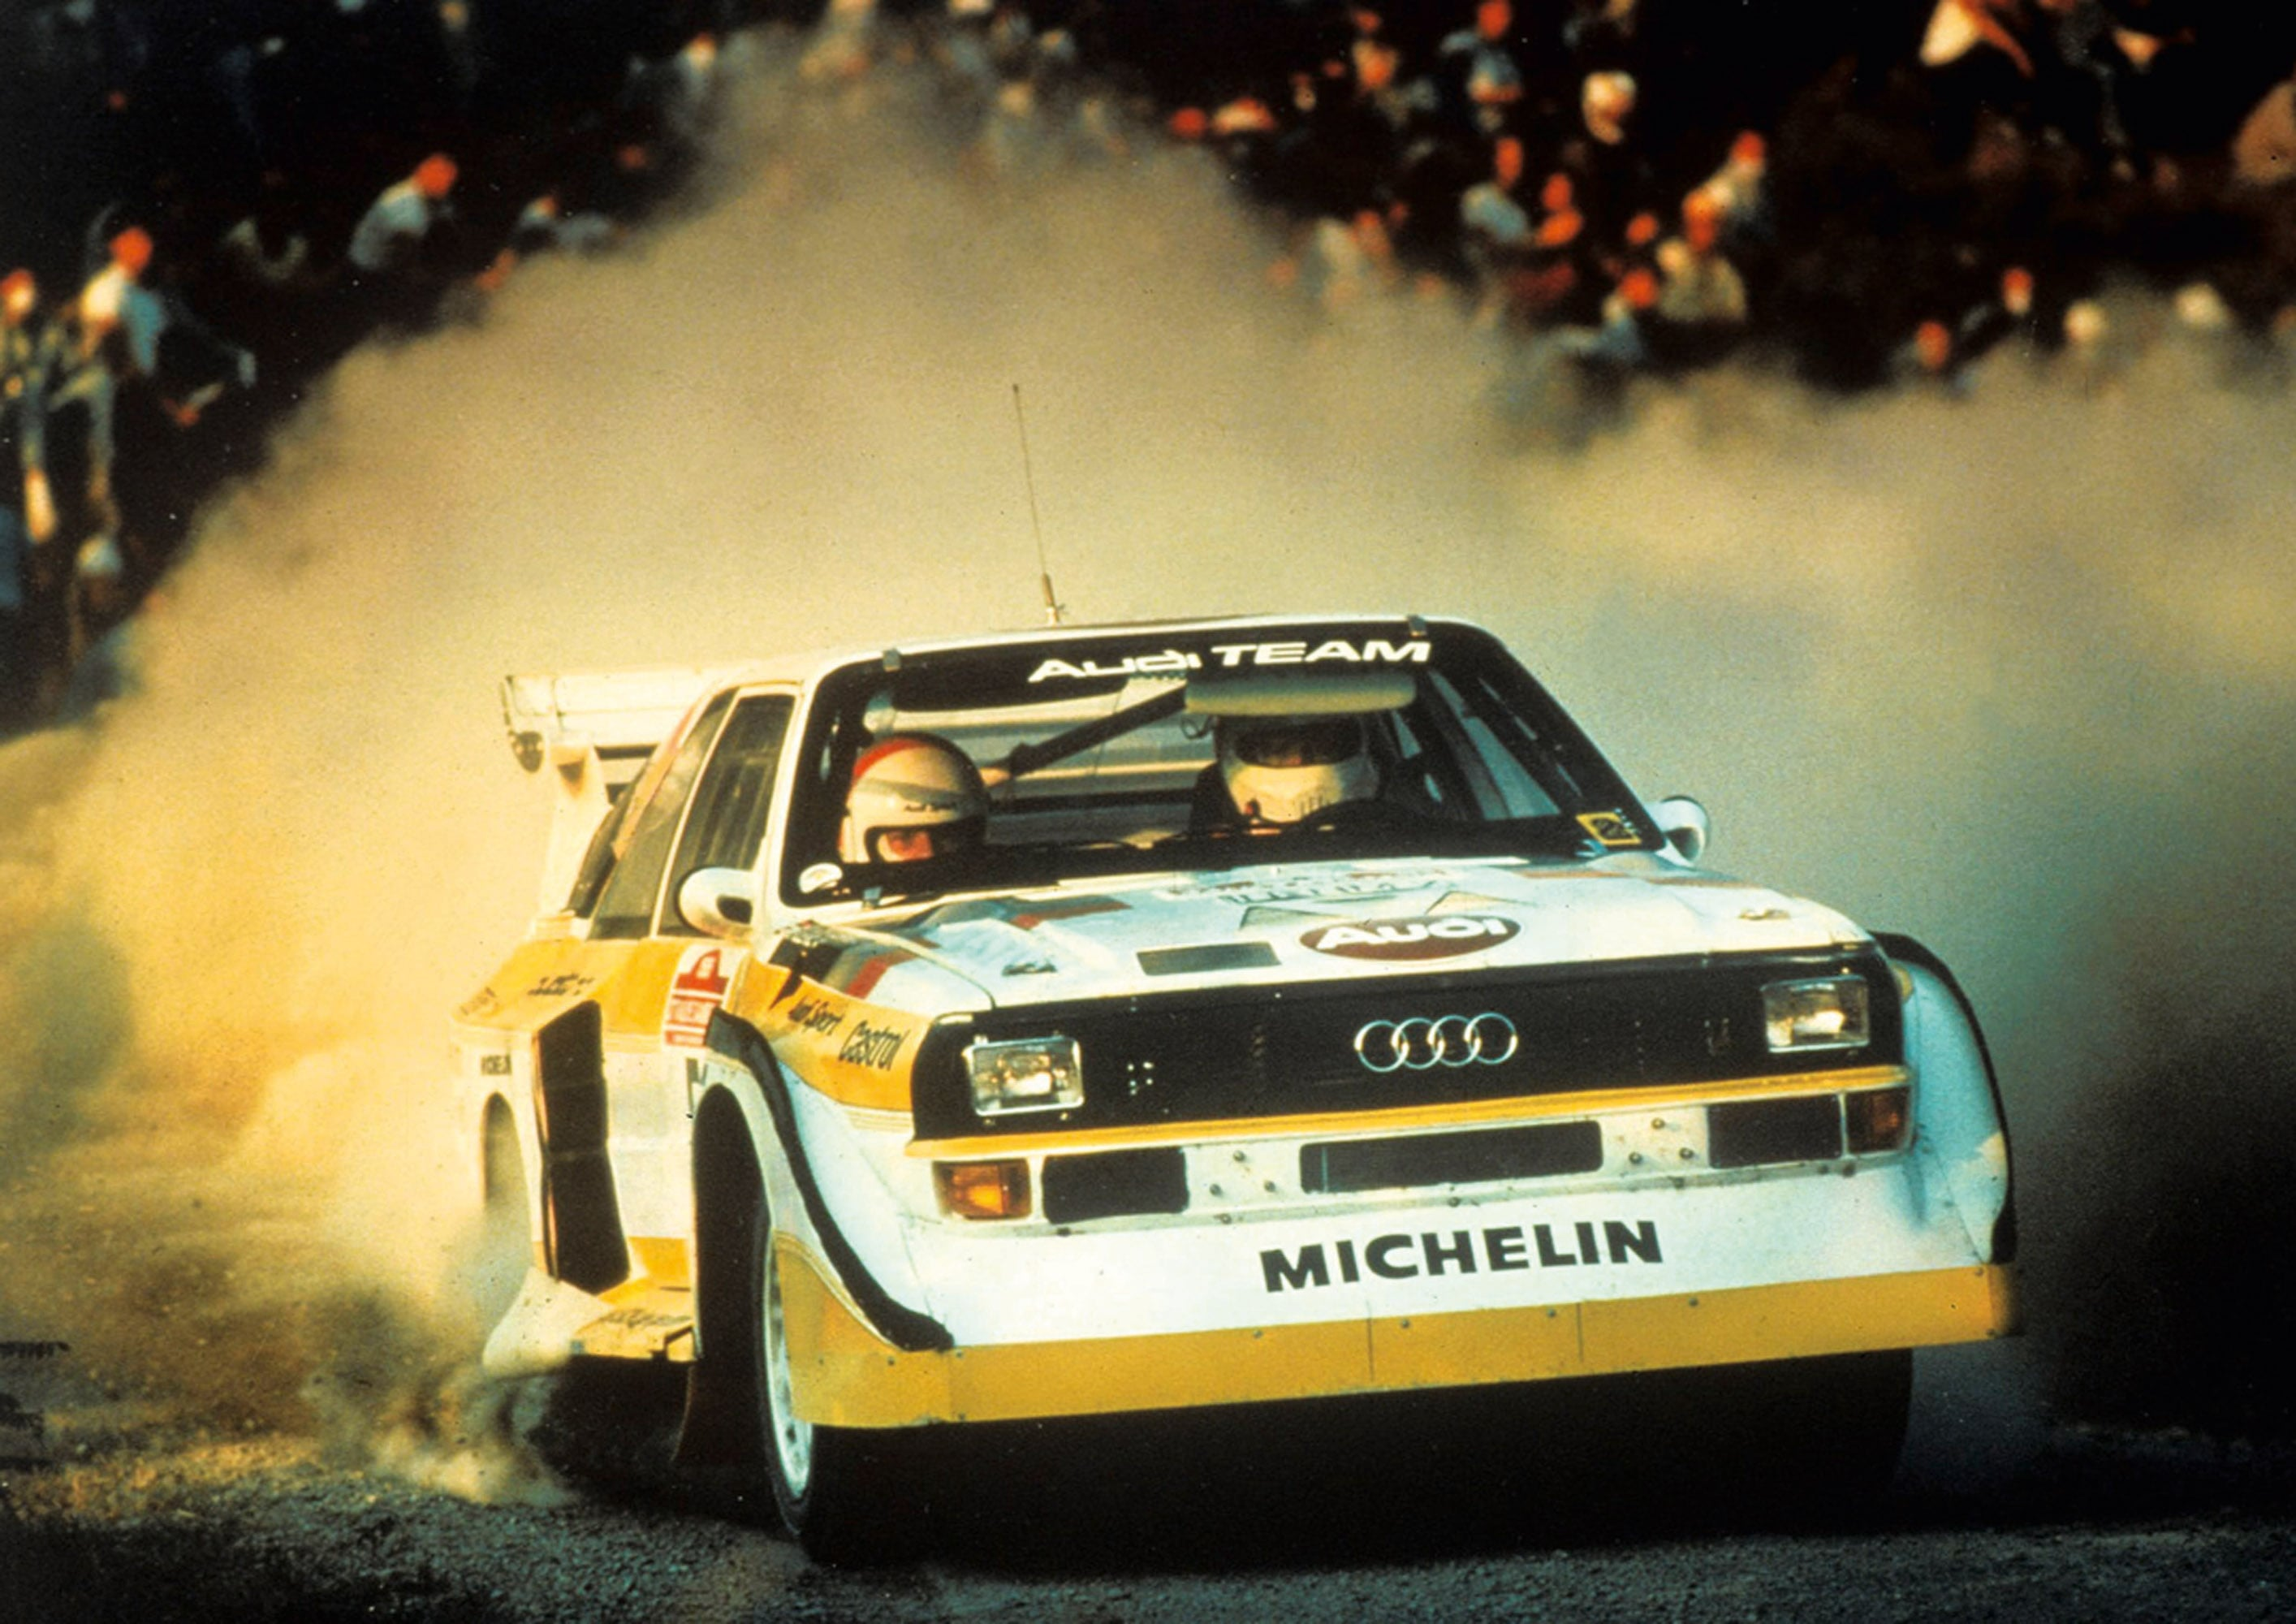 Audi Sport Quattro Wallpapers and Background Images   stmednet 2828x2000